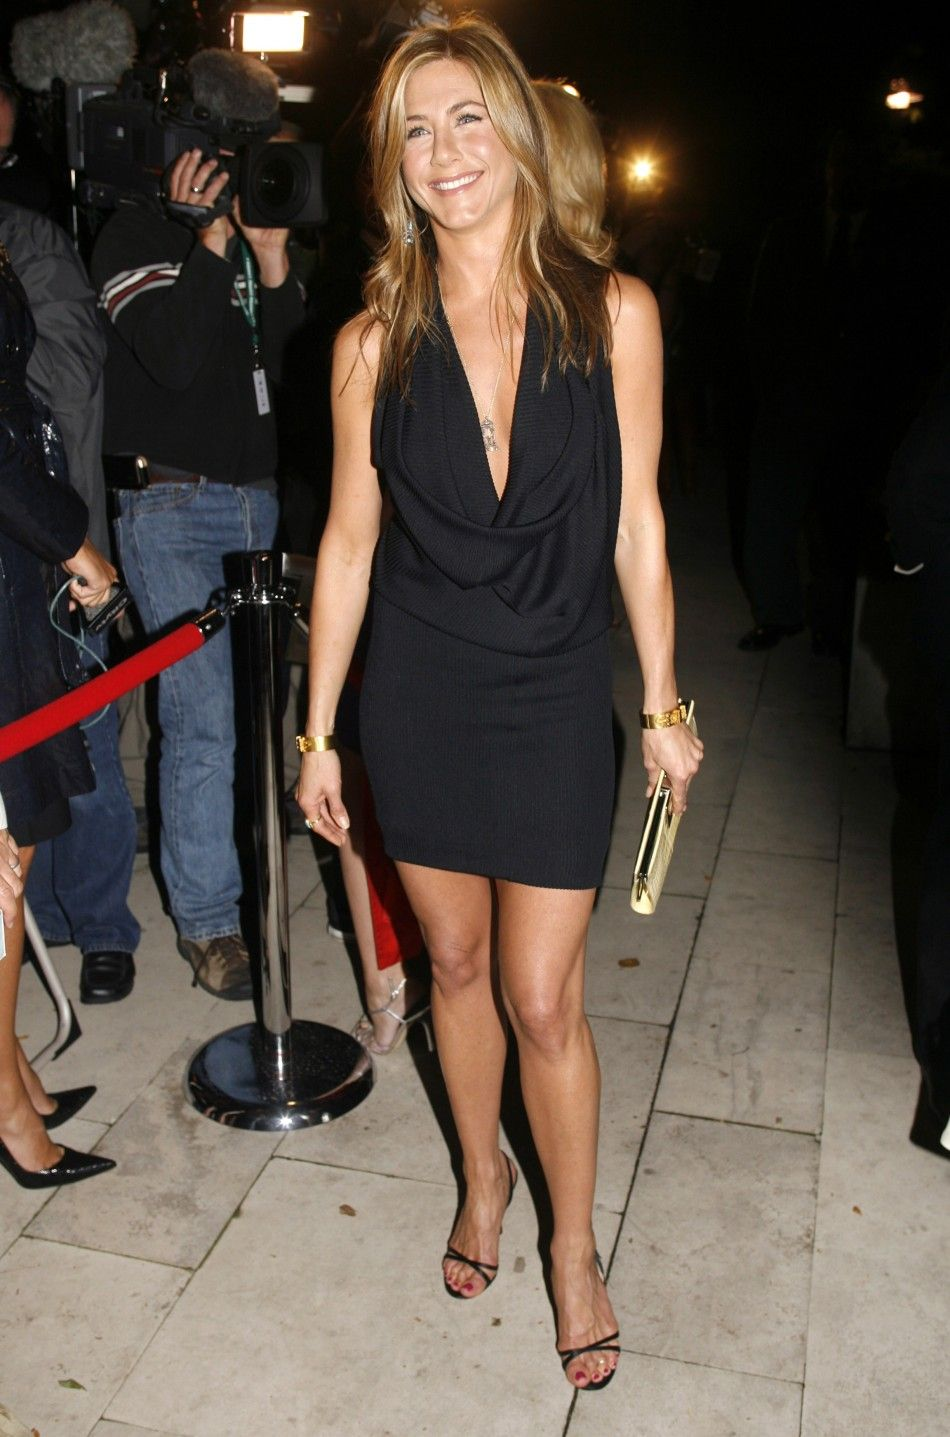 Jennifer Aniston Wedding: No Dress Yet And Valentino Rumors False ...